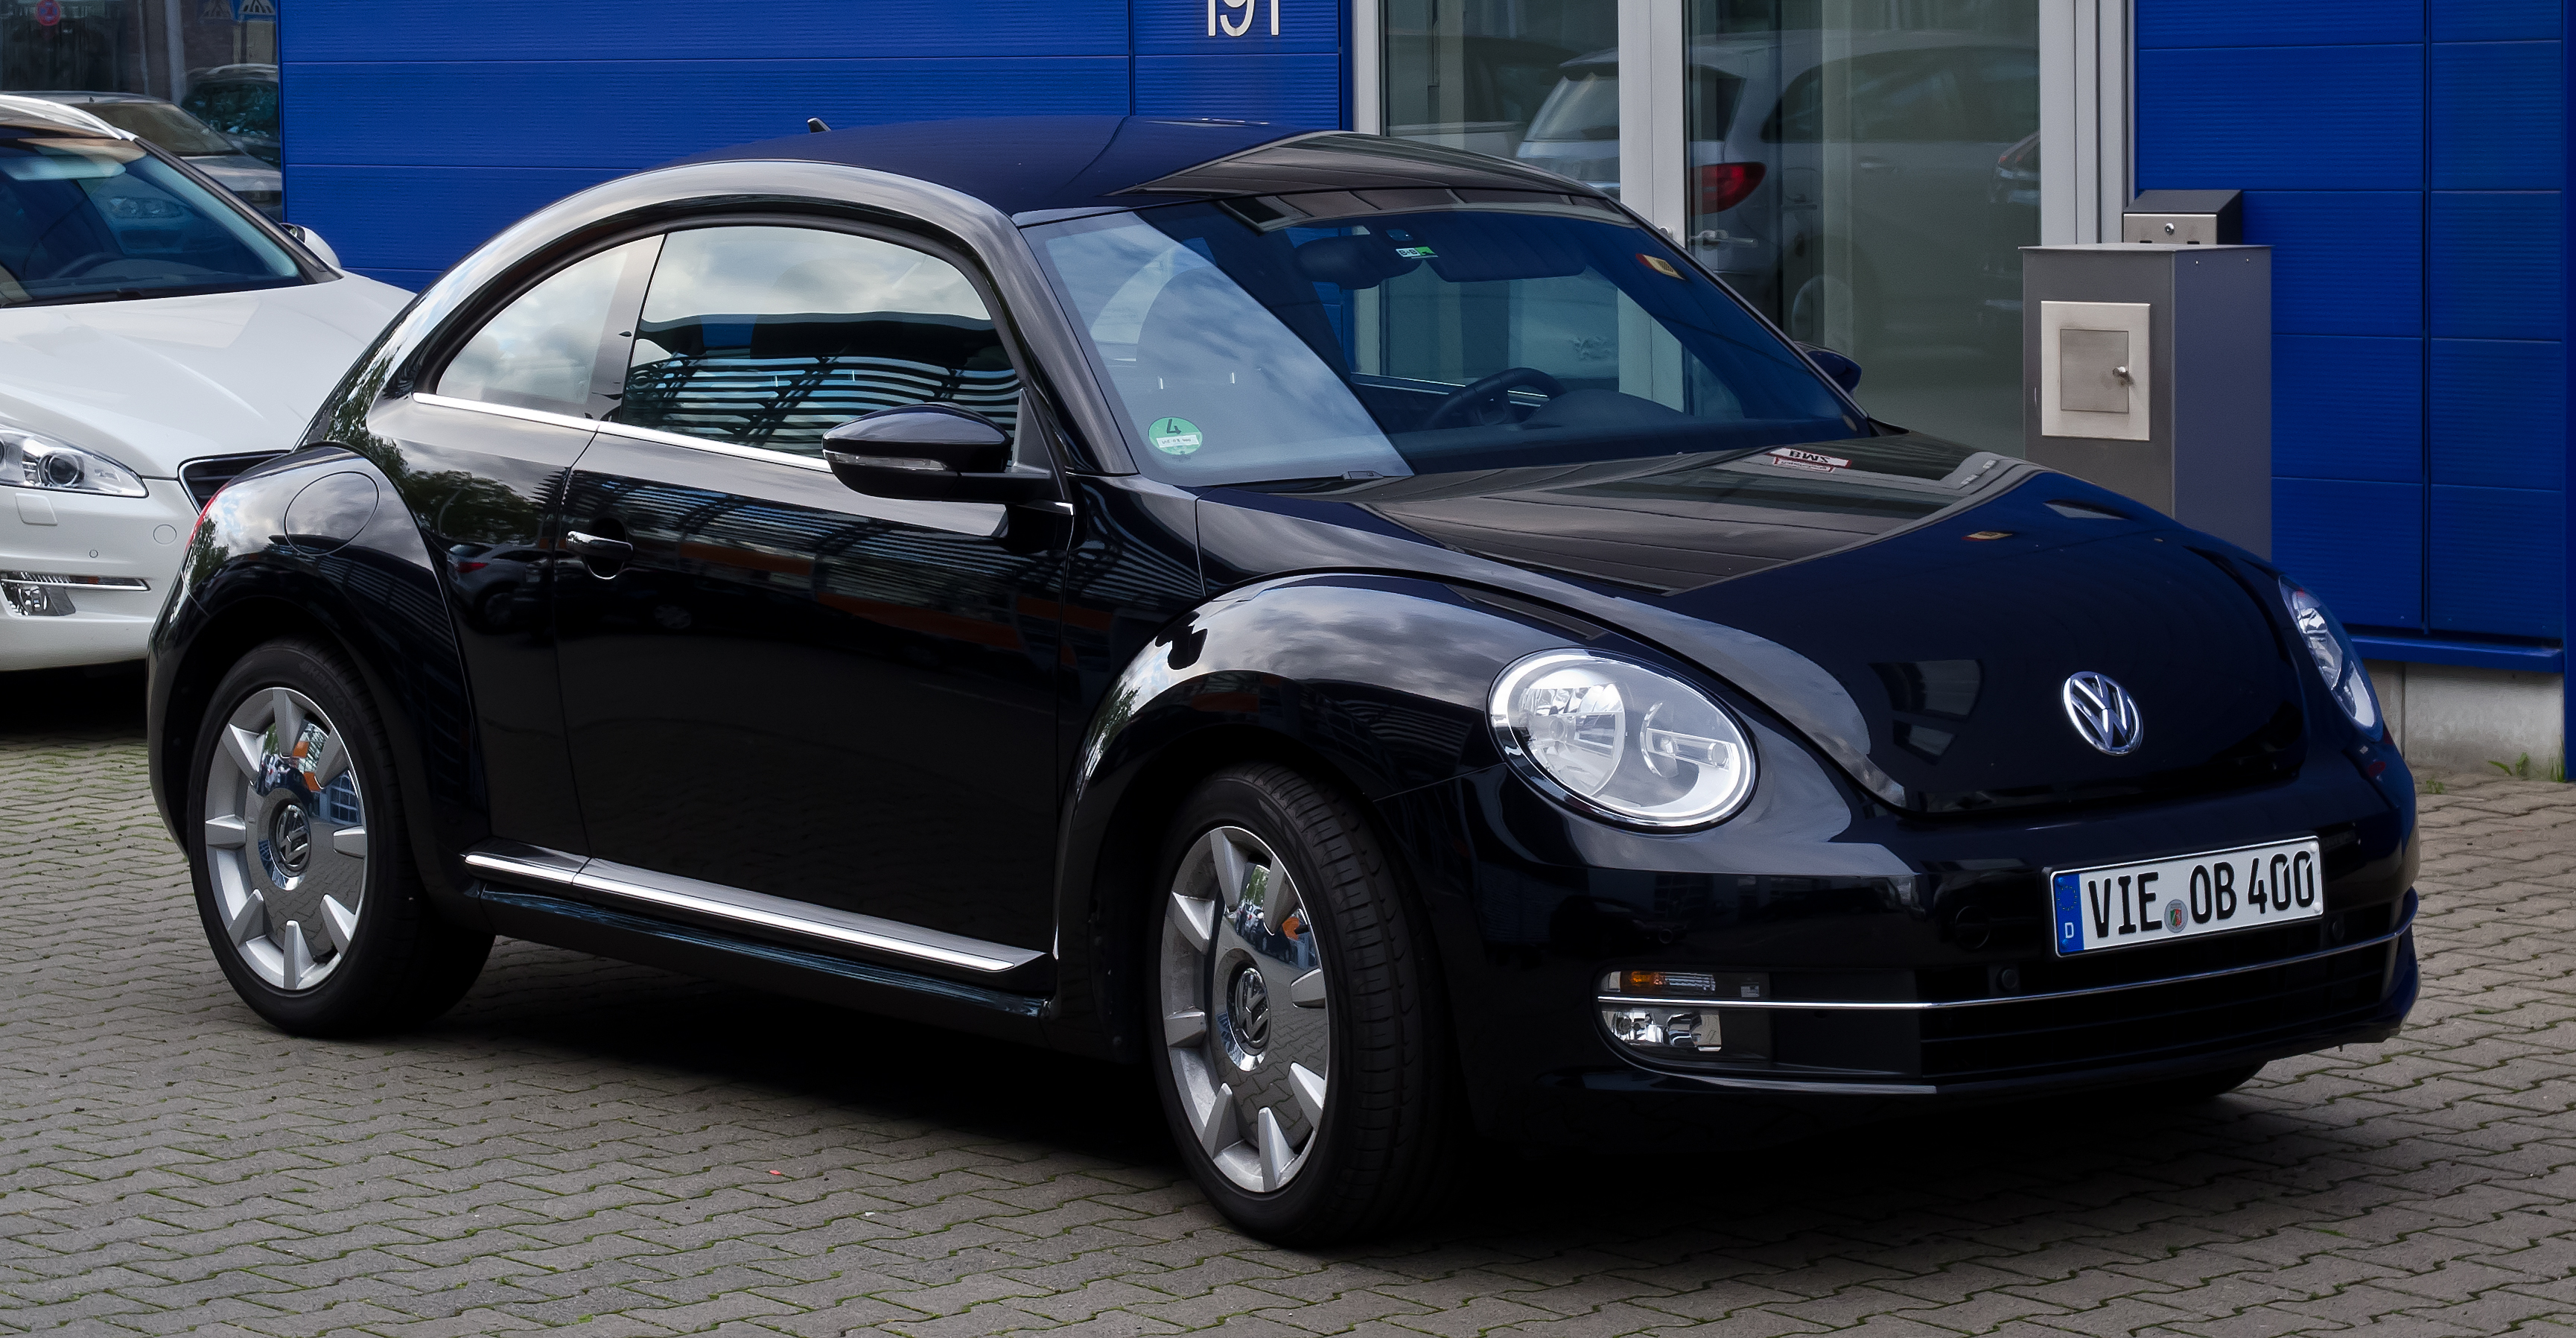 file vw beetle design frontansicht 8 juli 2012 d wikimedia commons. Black Bedroom Furniture Sets. Home Design Ideas